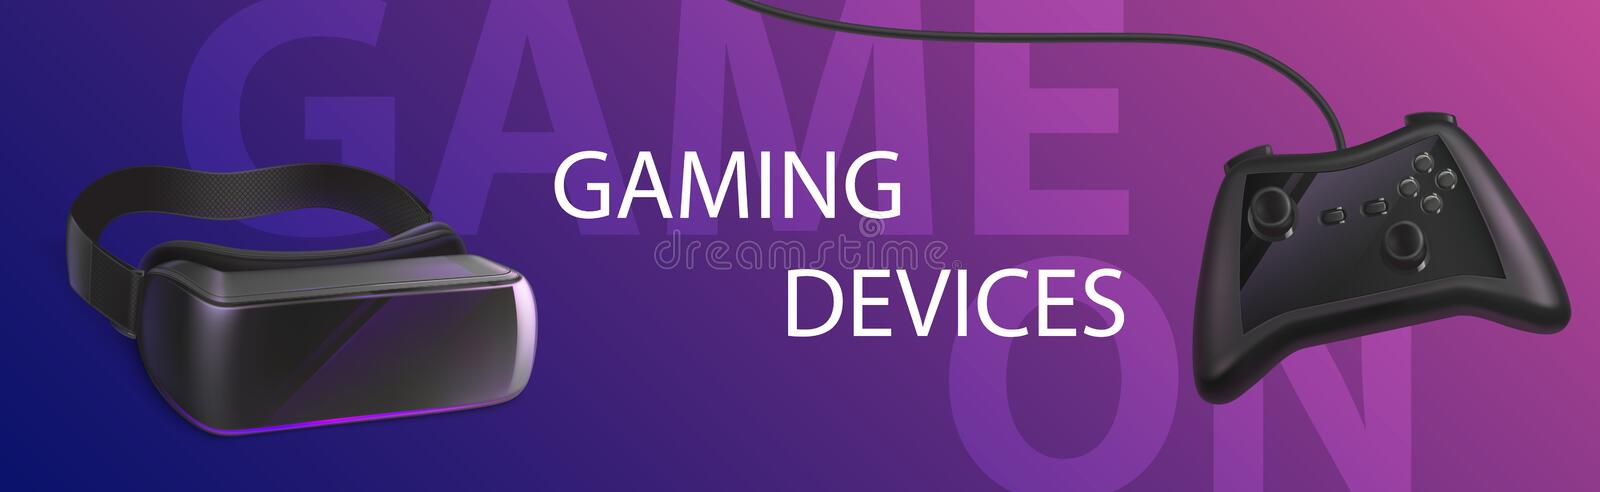 Gaming devices vr glasses and gamepad banner. Gaming devices vr glasses and gamepad banner, virtual reality goggles, controller joystick, tools for playing royalty free illustration